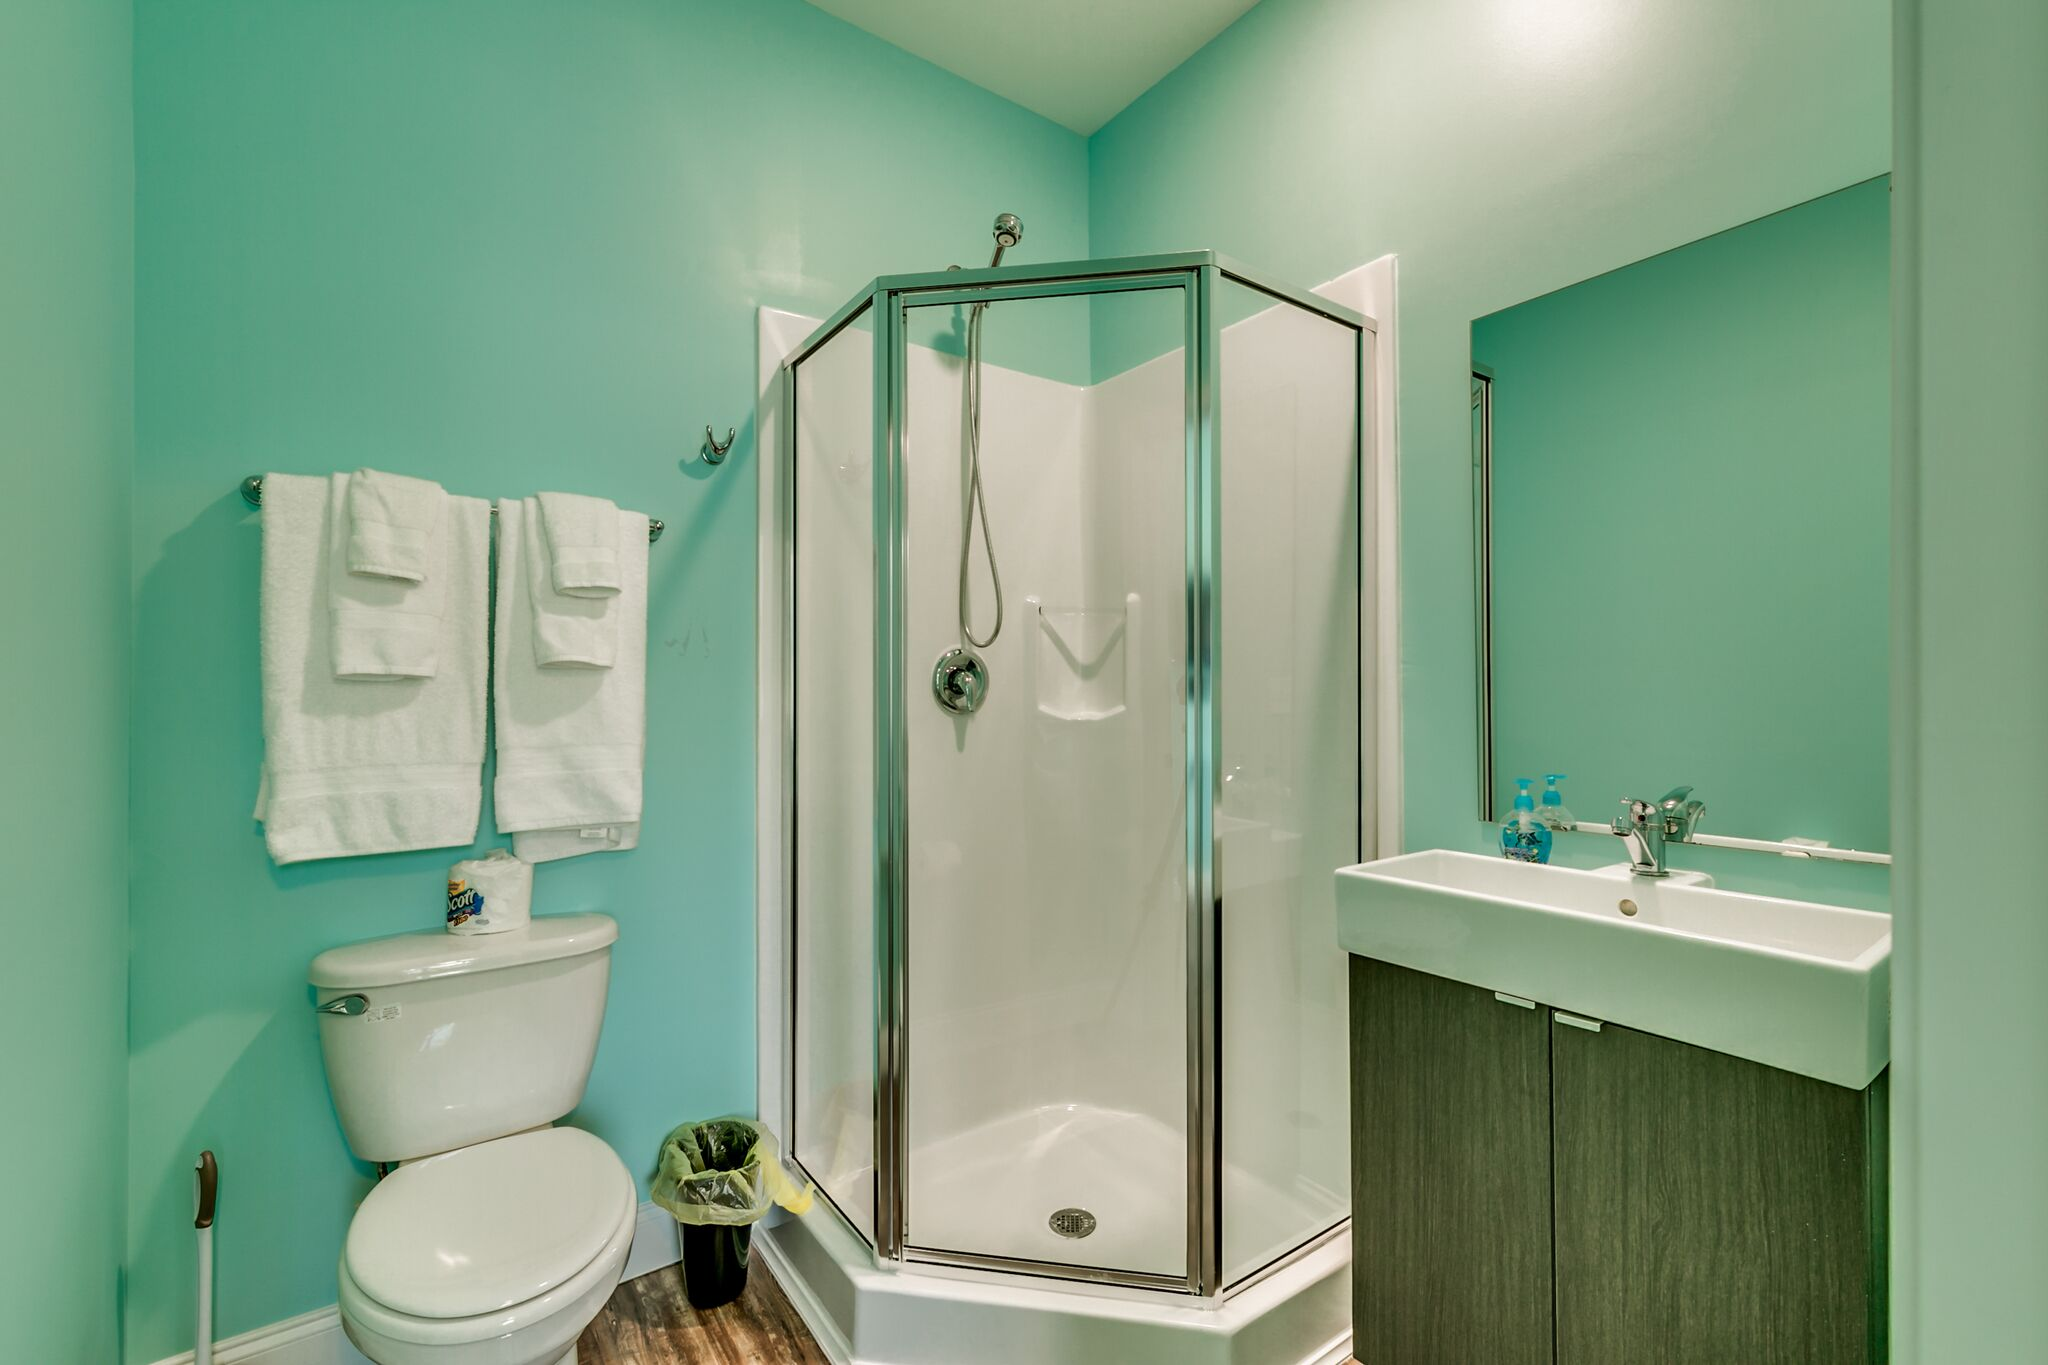 208 3rd Ave bathroom with shower.